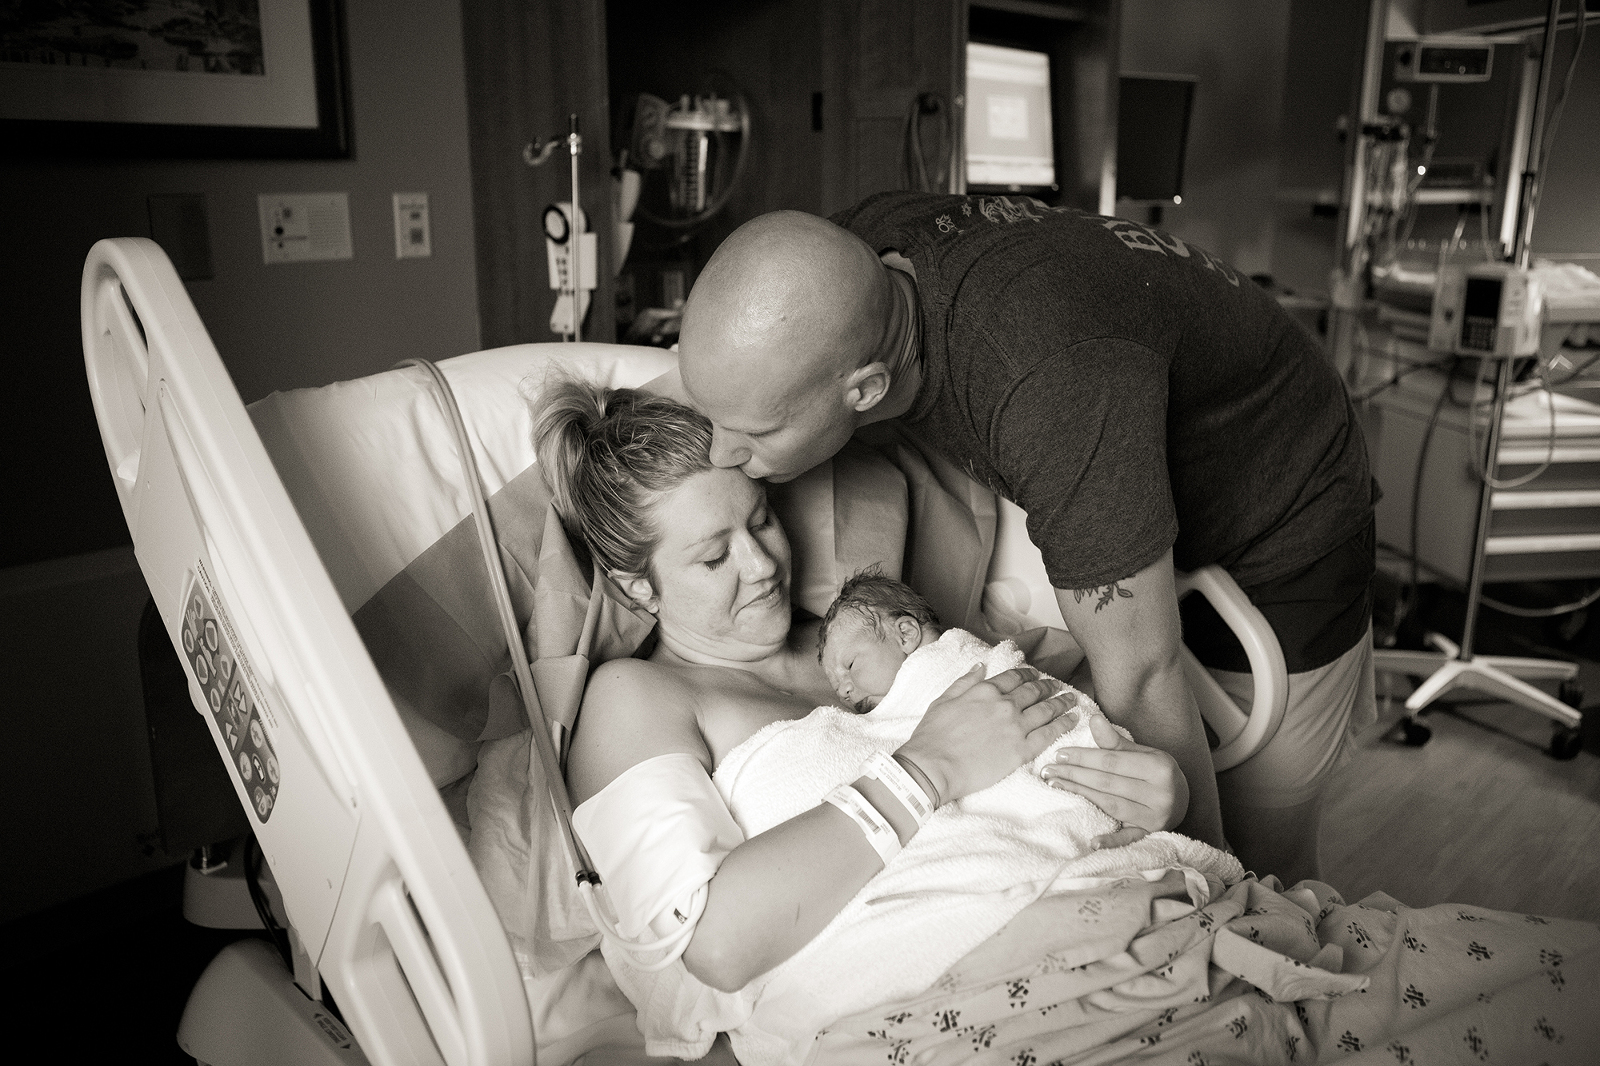 dad kissing mom in hospital bed on the head after the birth of their son